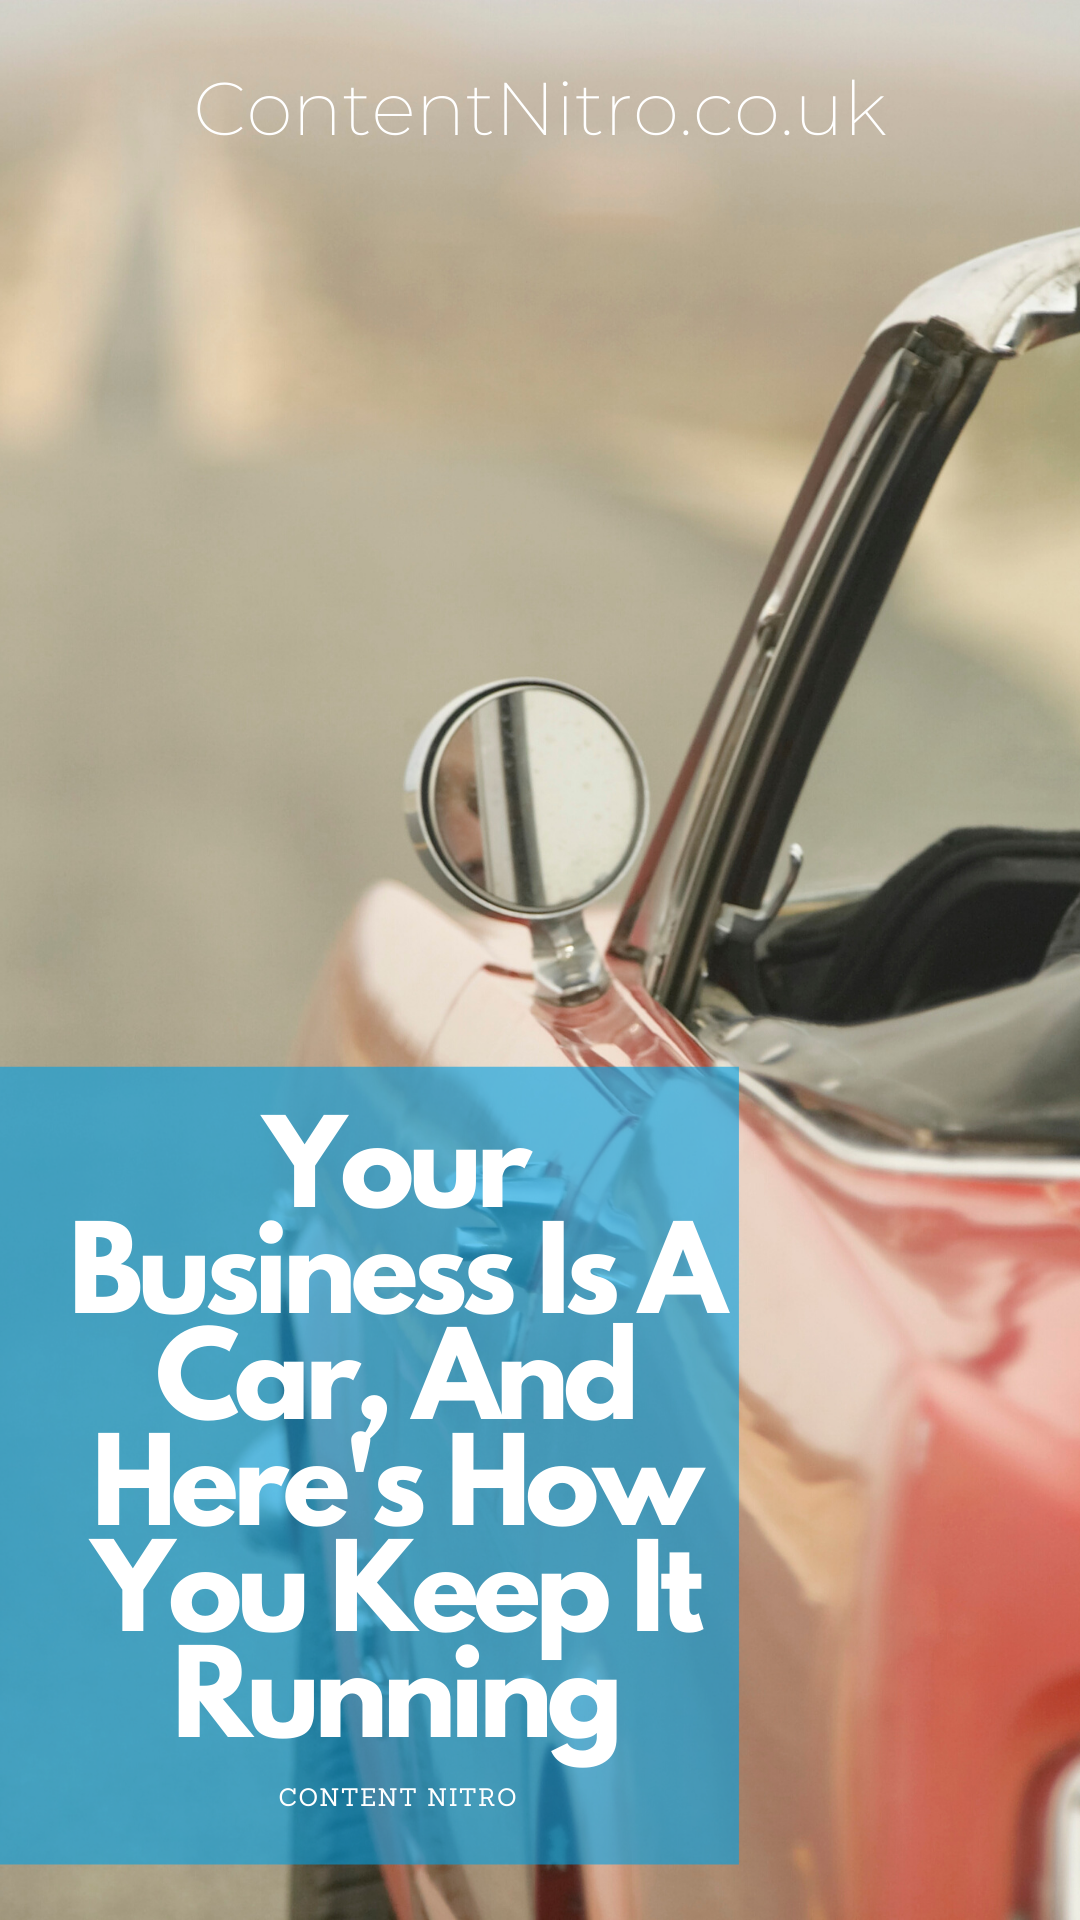 Your Business Is A Car, And Here's How You Keep It Running